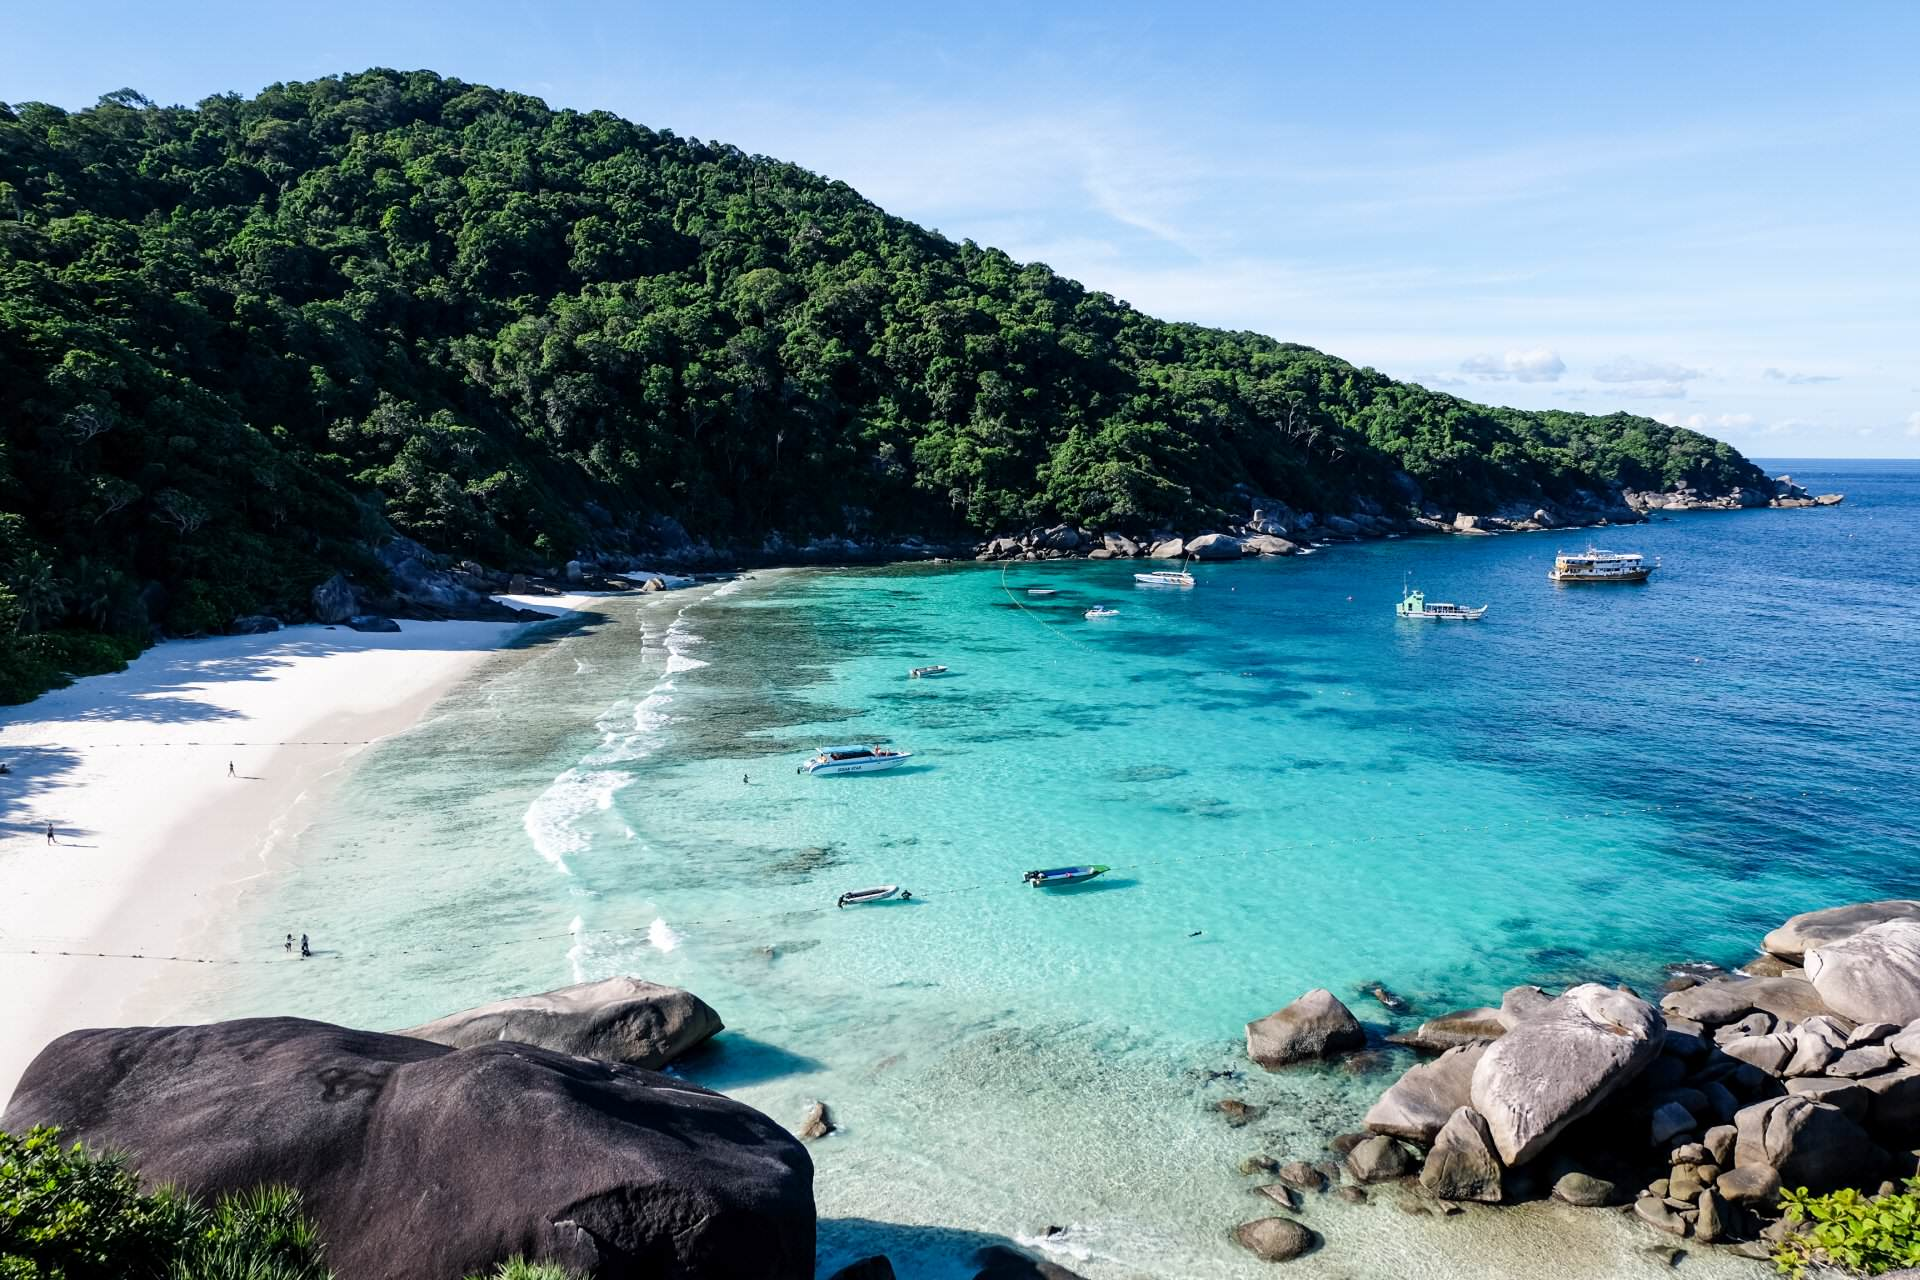 4 Days & 4 Nights on 6 sqm - Diving the Similan Islands